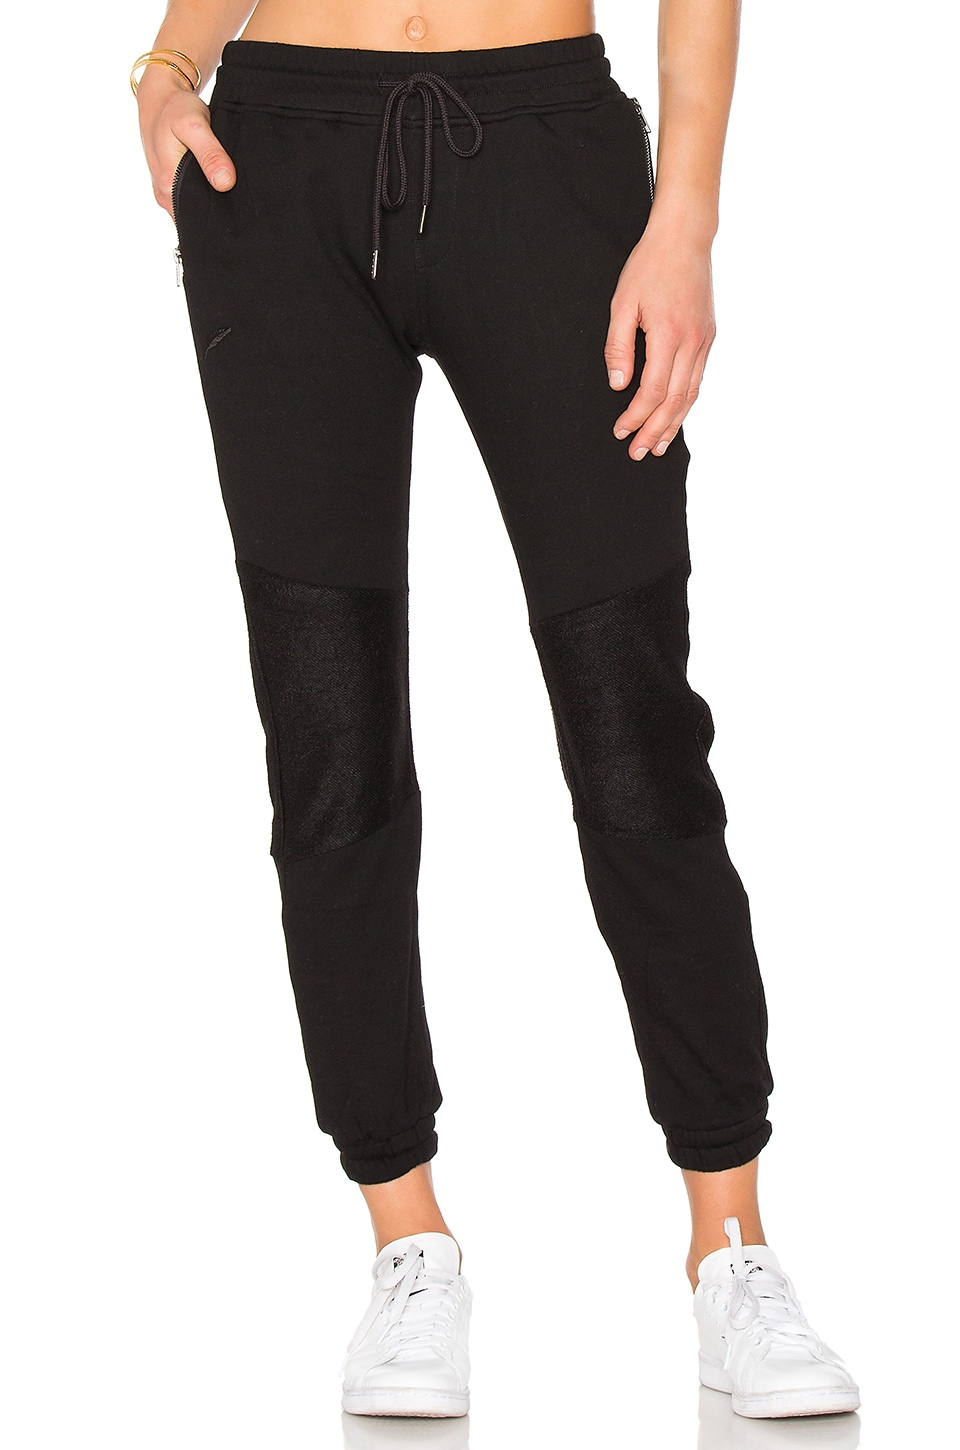 Publish Sophanny Jogger in Black